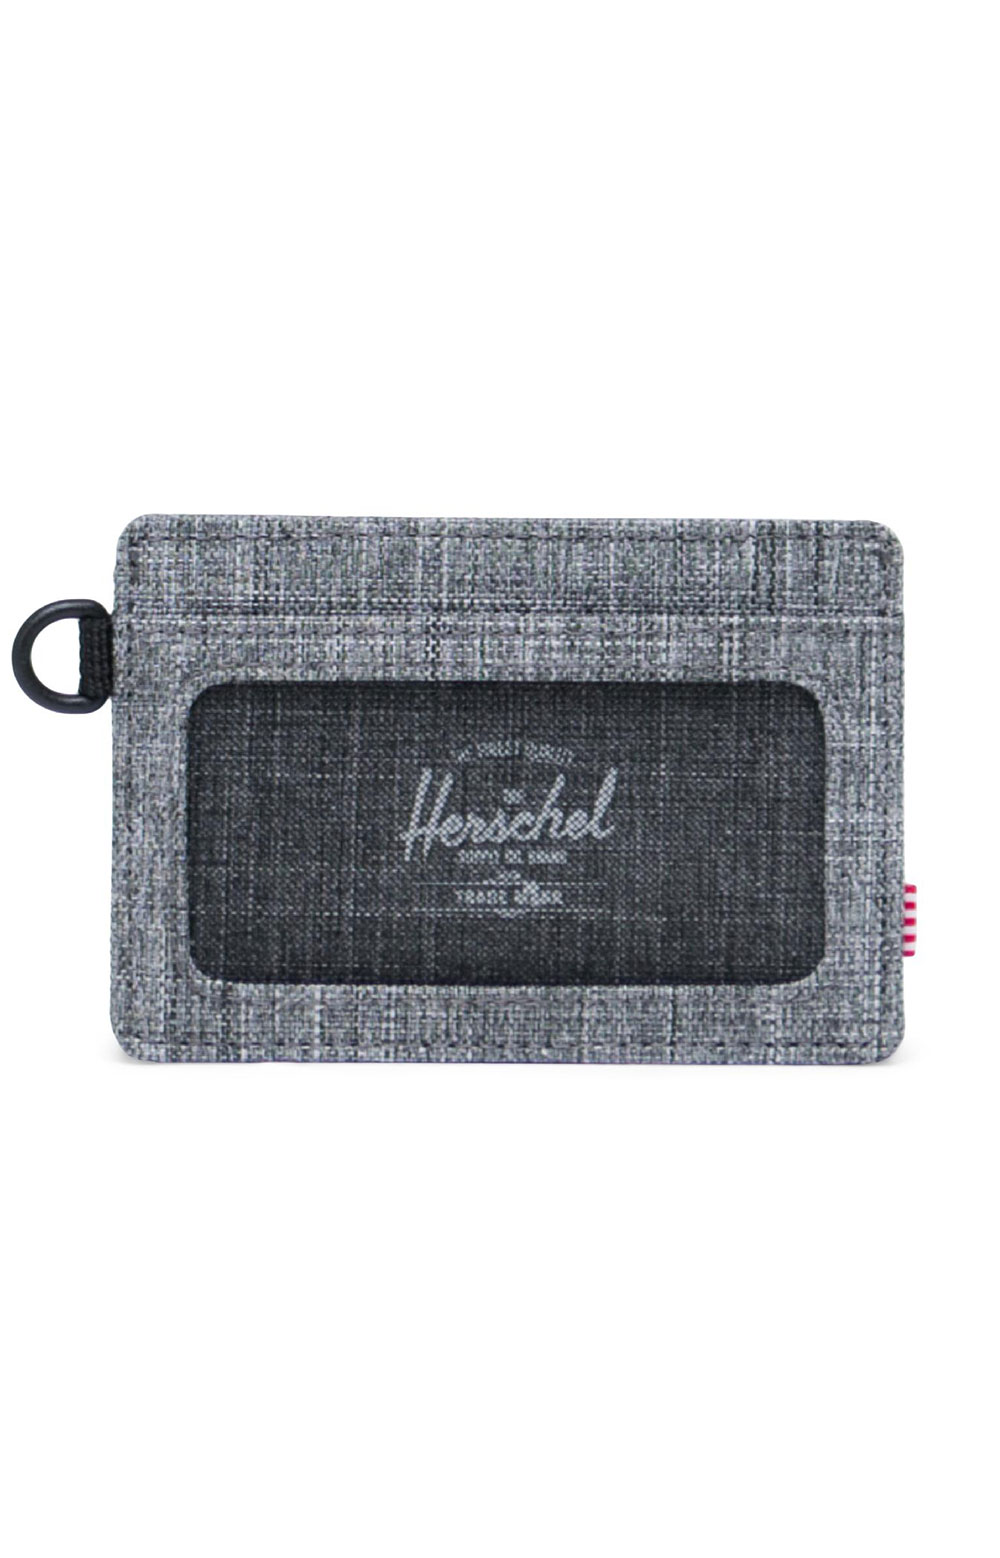 Charlie ID Wallet - Raven X